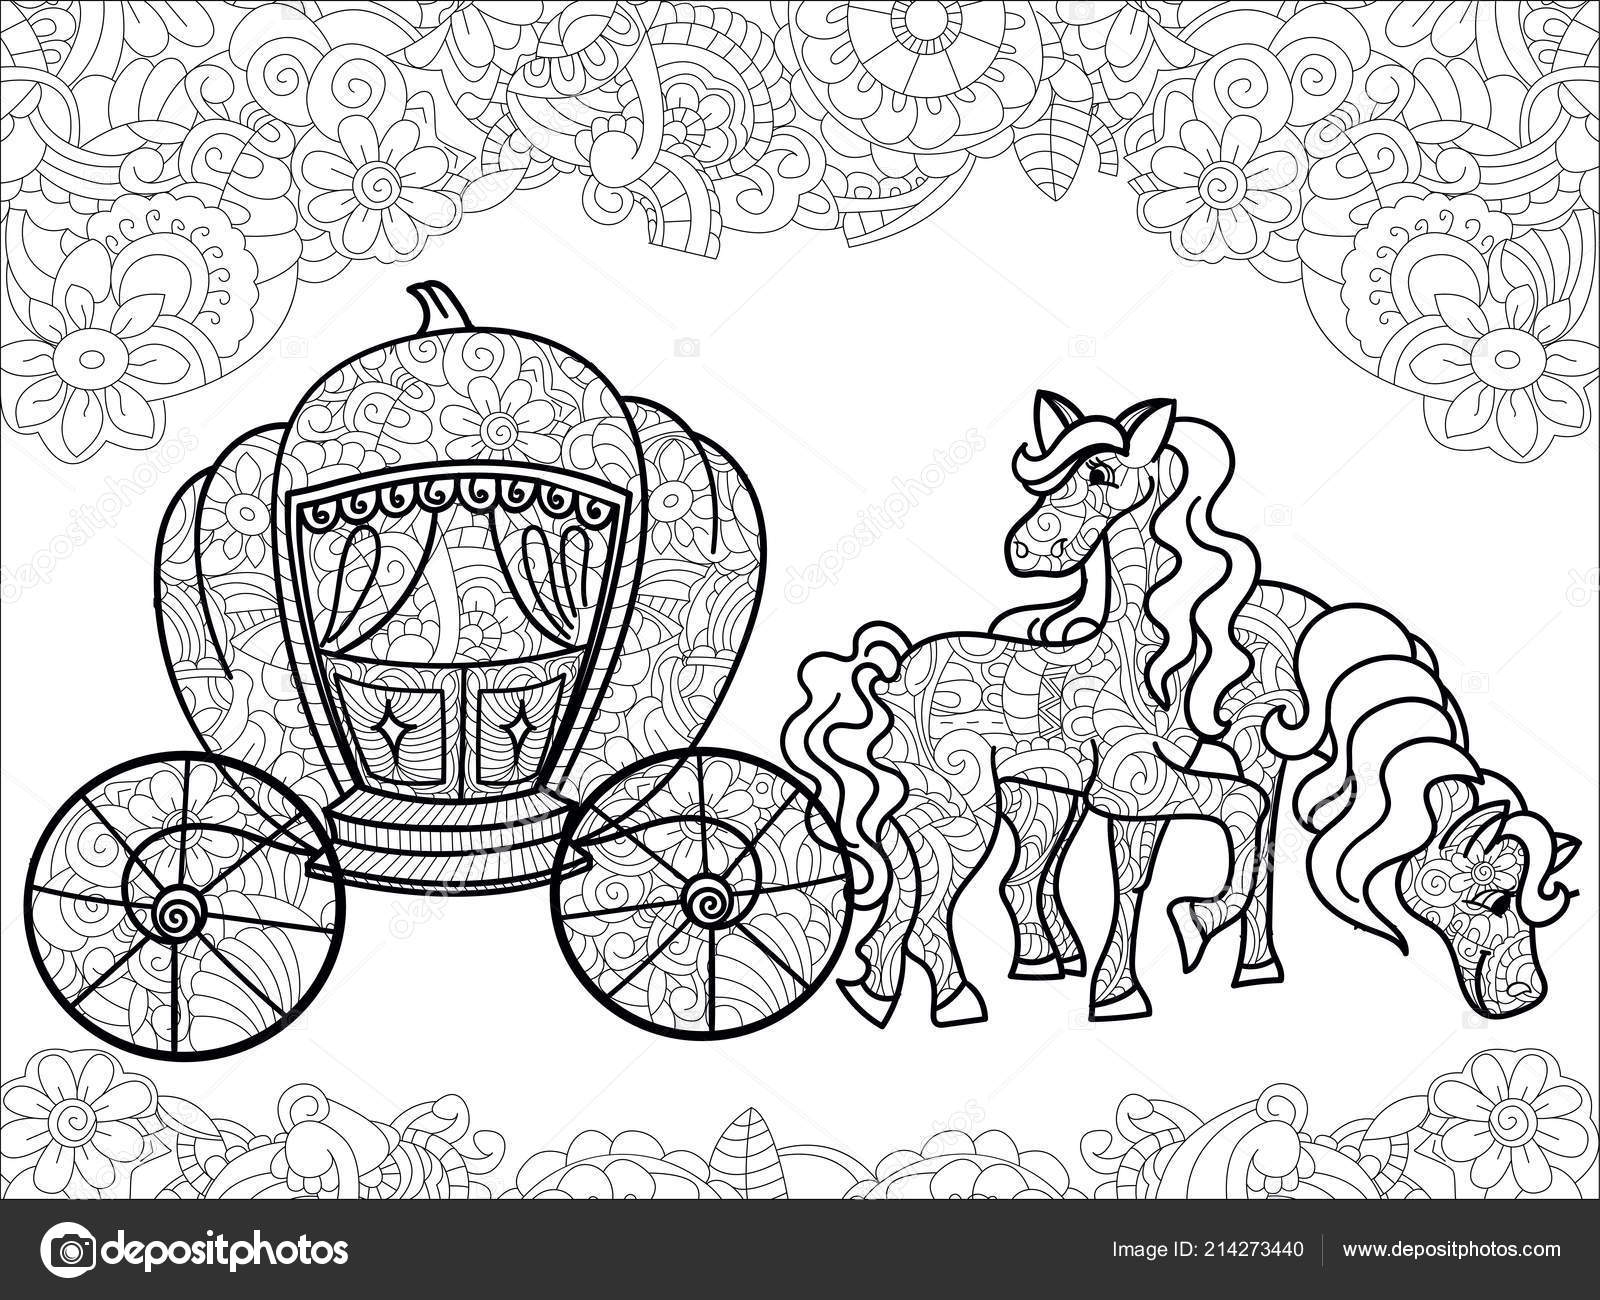 Carriage pumpkin and horses transport for the king childrens anti stress coloring book raster illustration